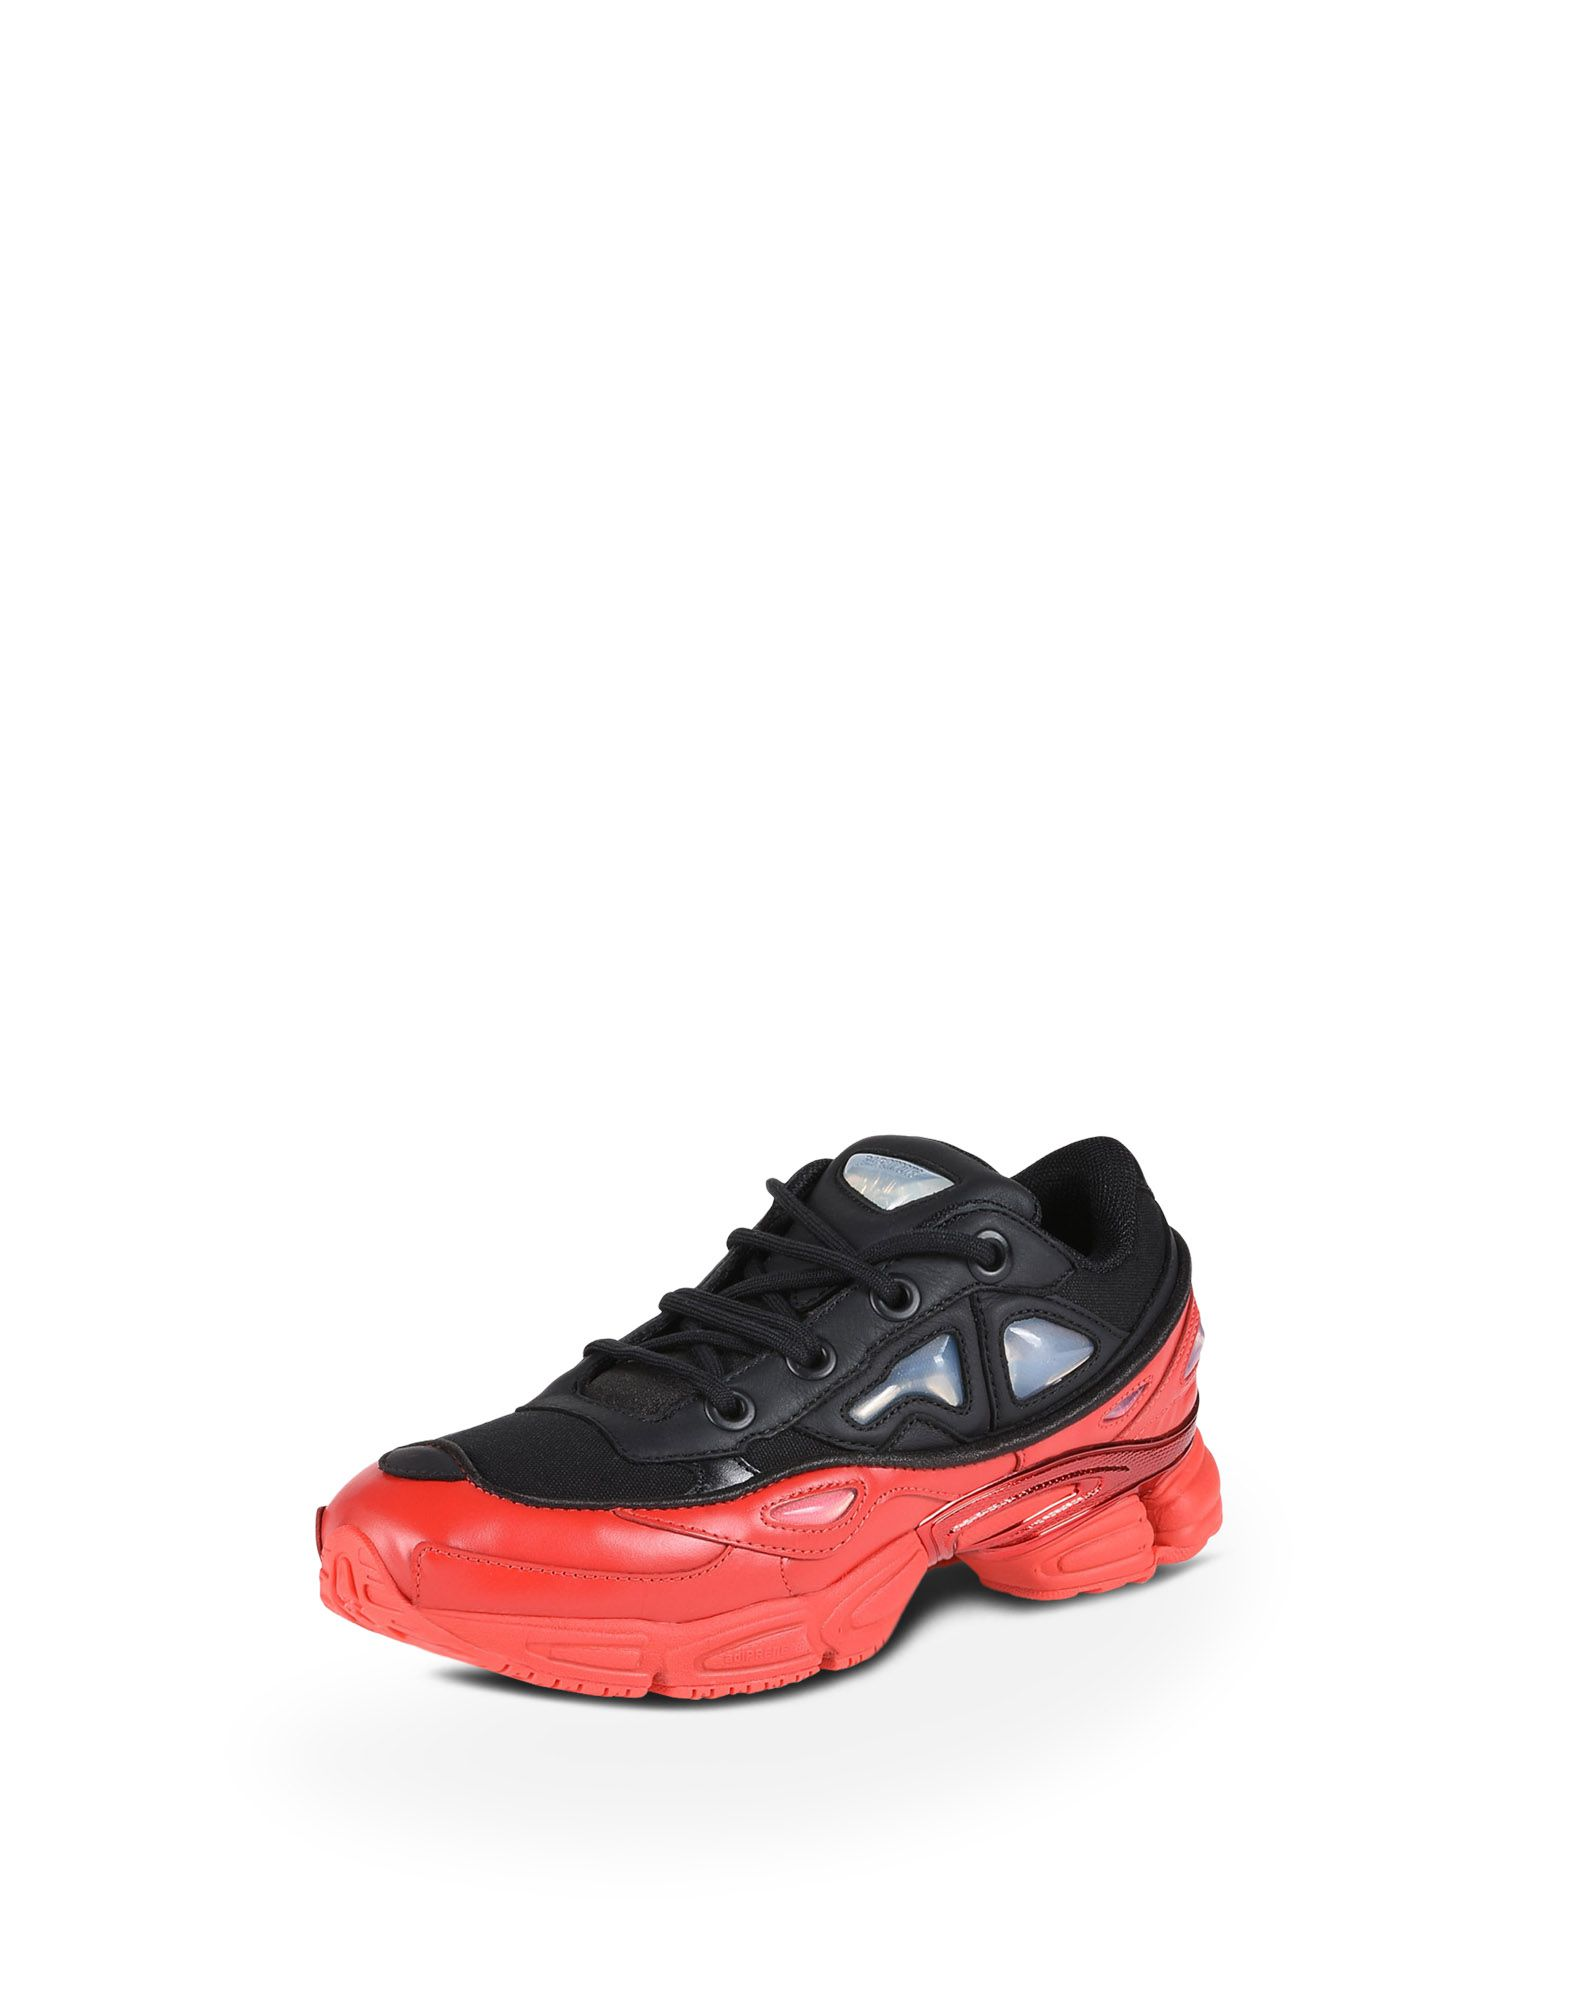 low priced 7ff55 72cfa RAF SIMONS OZWEEGO III Trainers | Adidas Y-3 Official Site